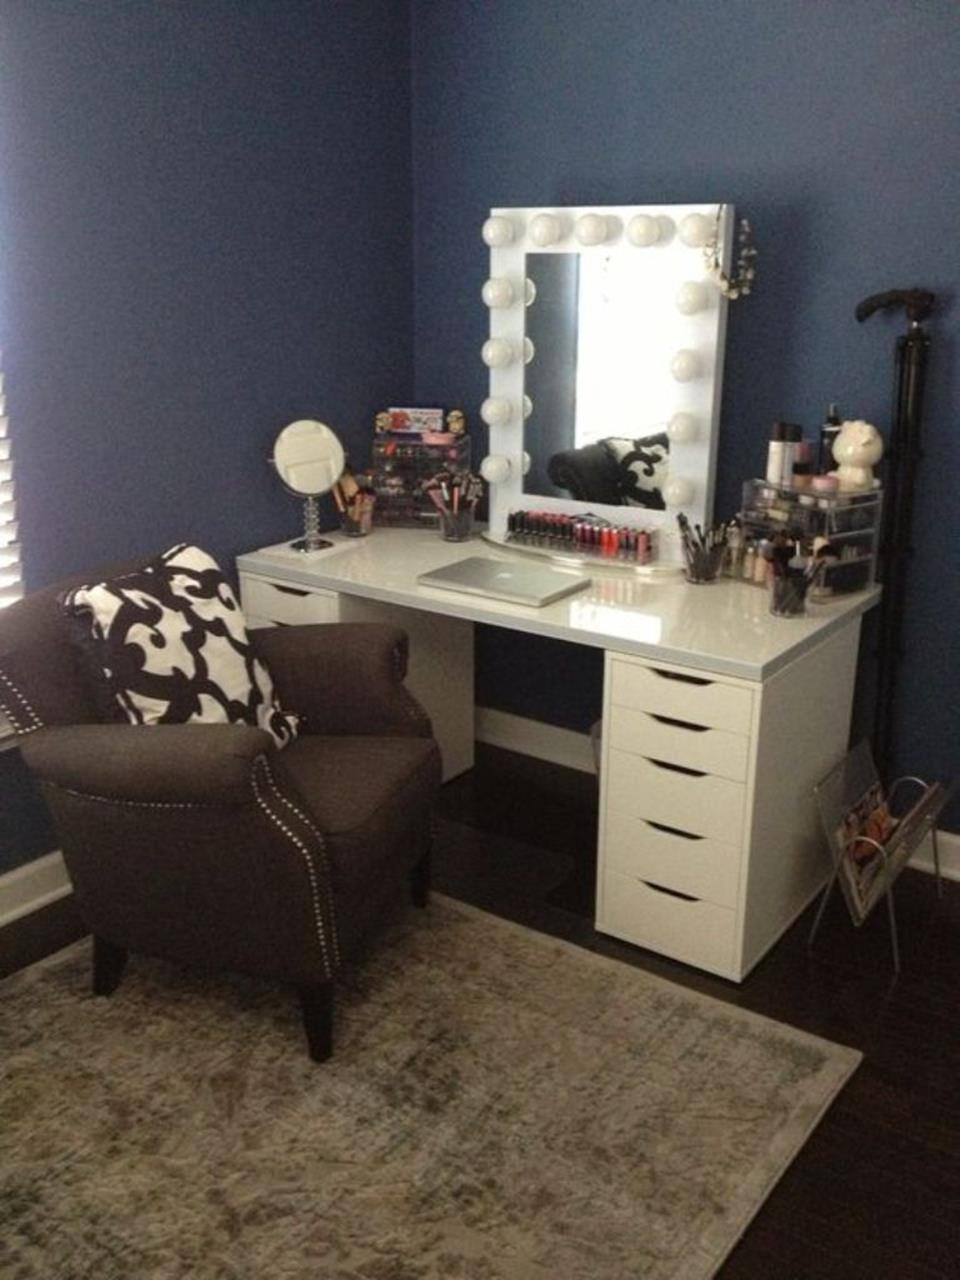 bedroom vanity set with lights around mirror 19 - gongetech